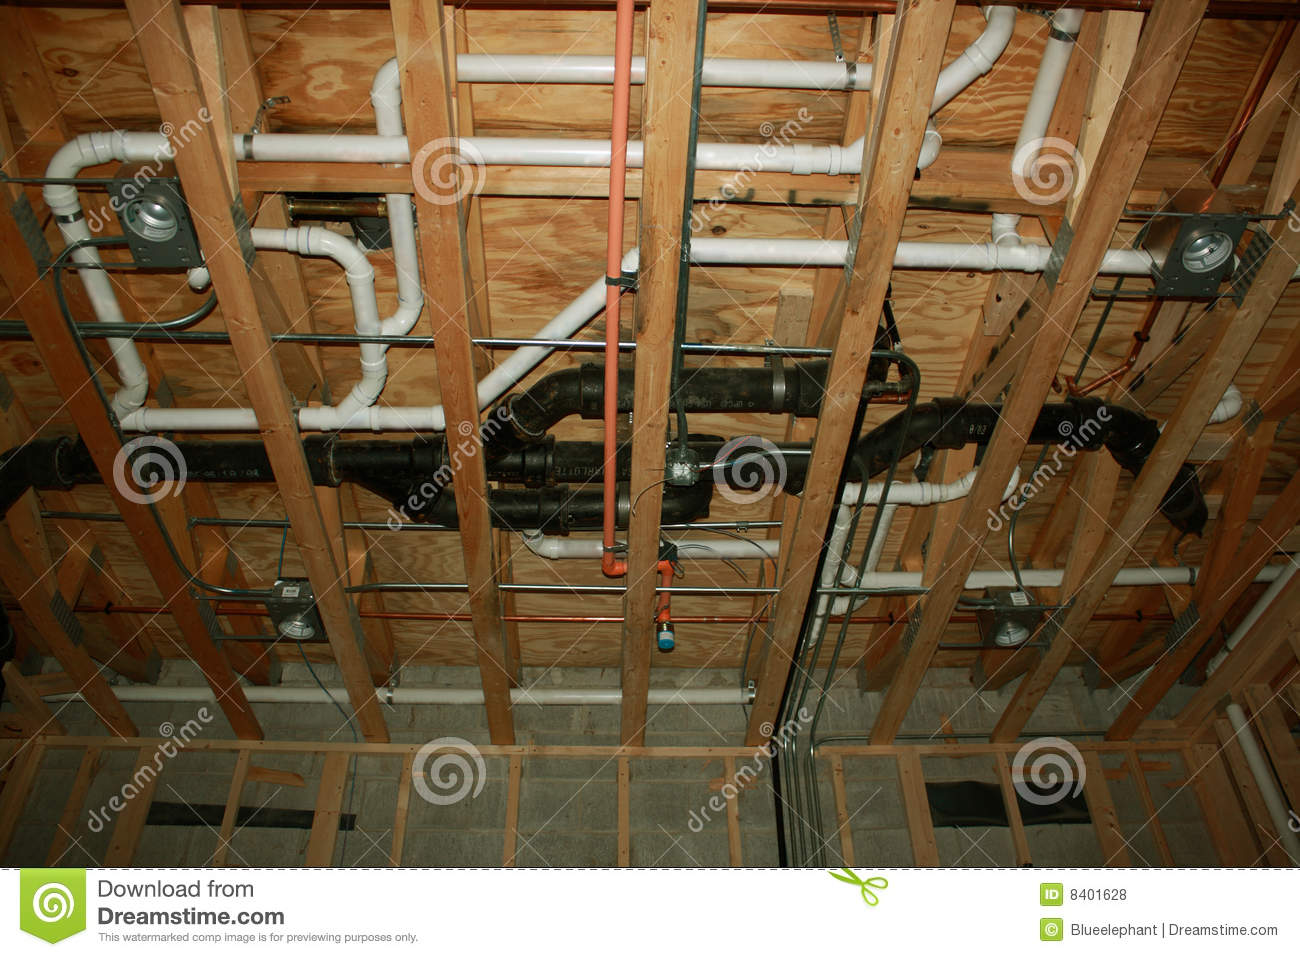 Plumbing new construction stock photo image of home for Plumbing a new house